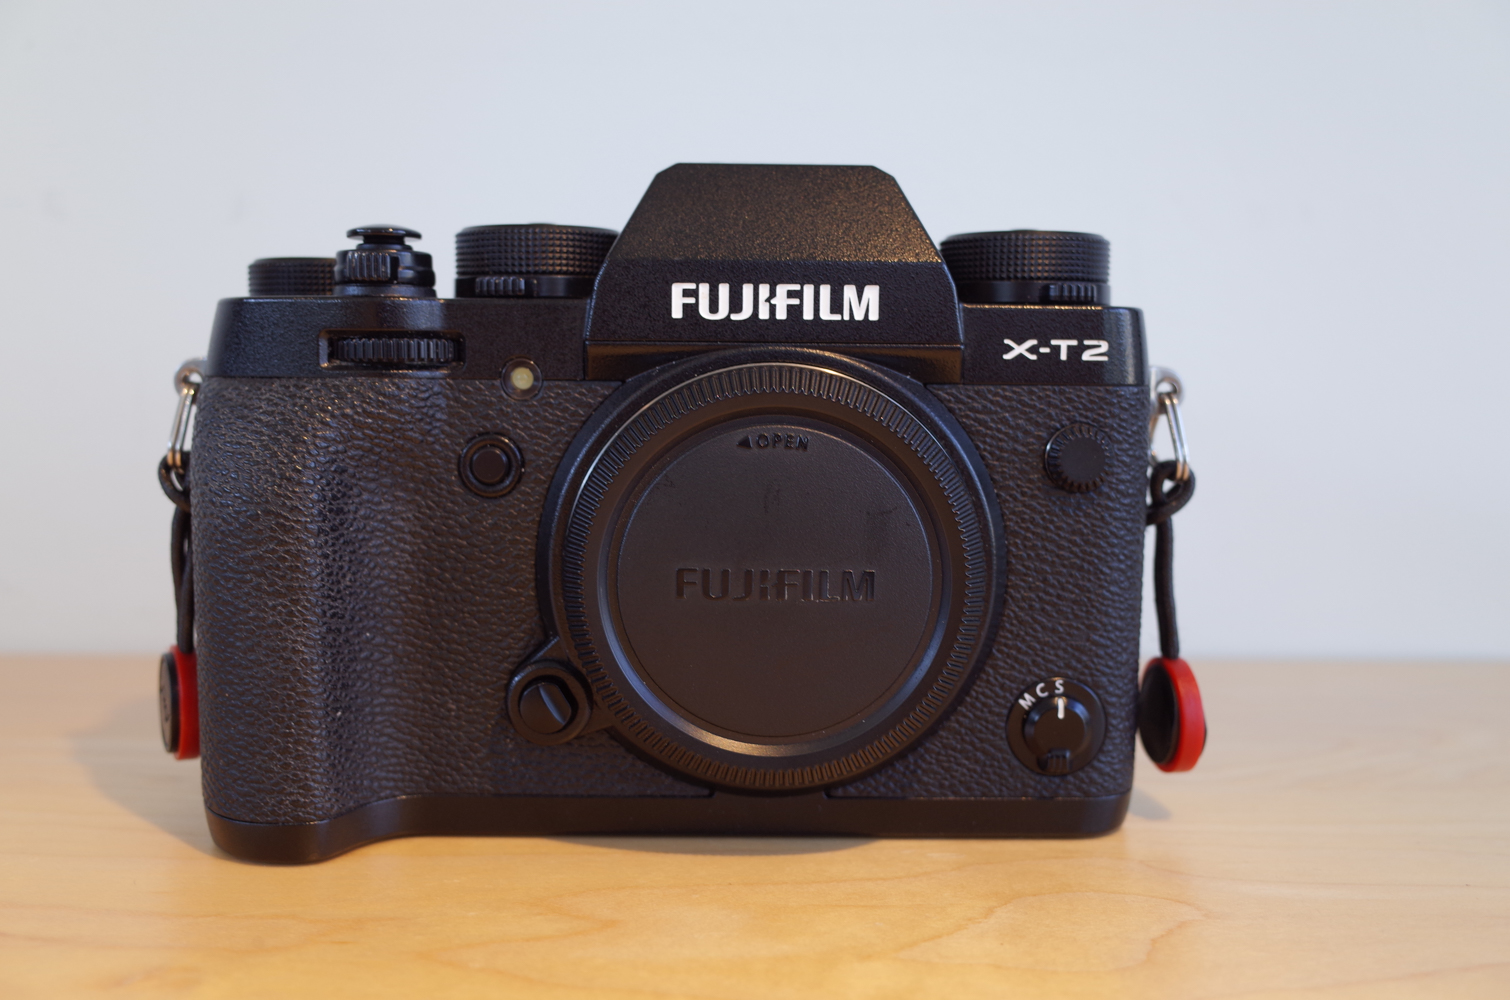 Sold: Fujifilm X-T2 + Battery Grip & more PRICE DROP - FM Forums